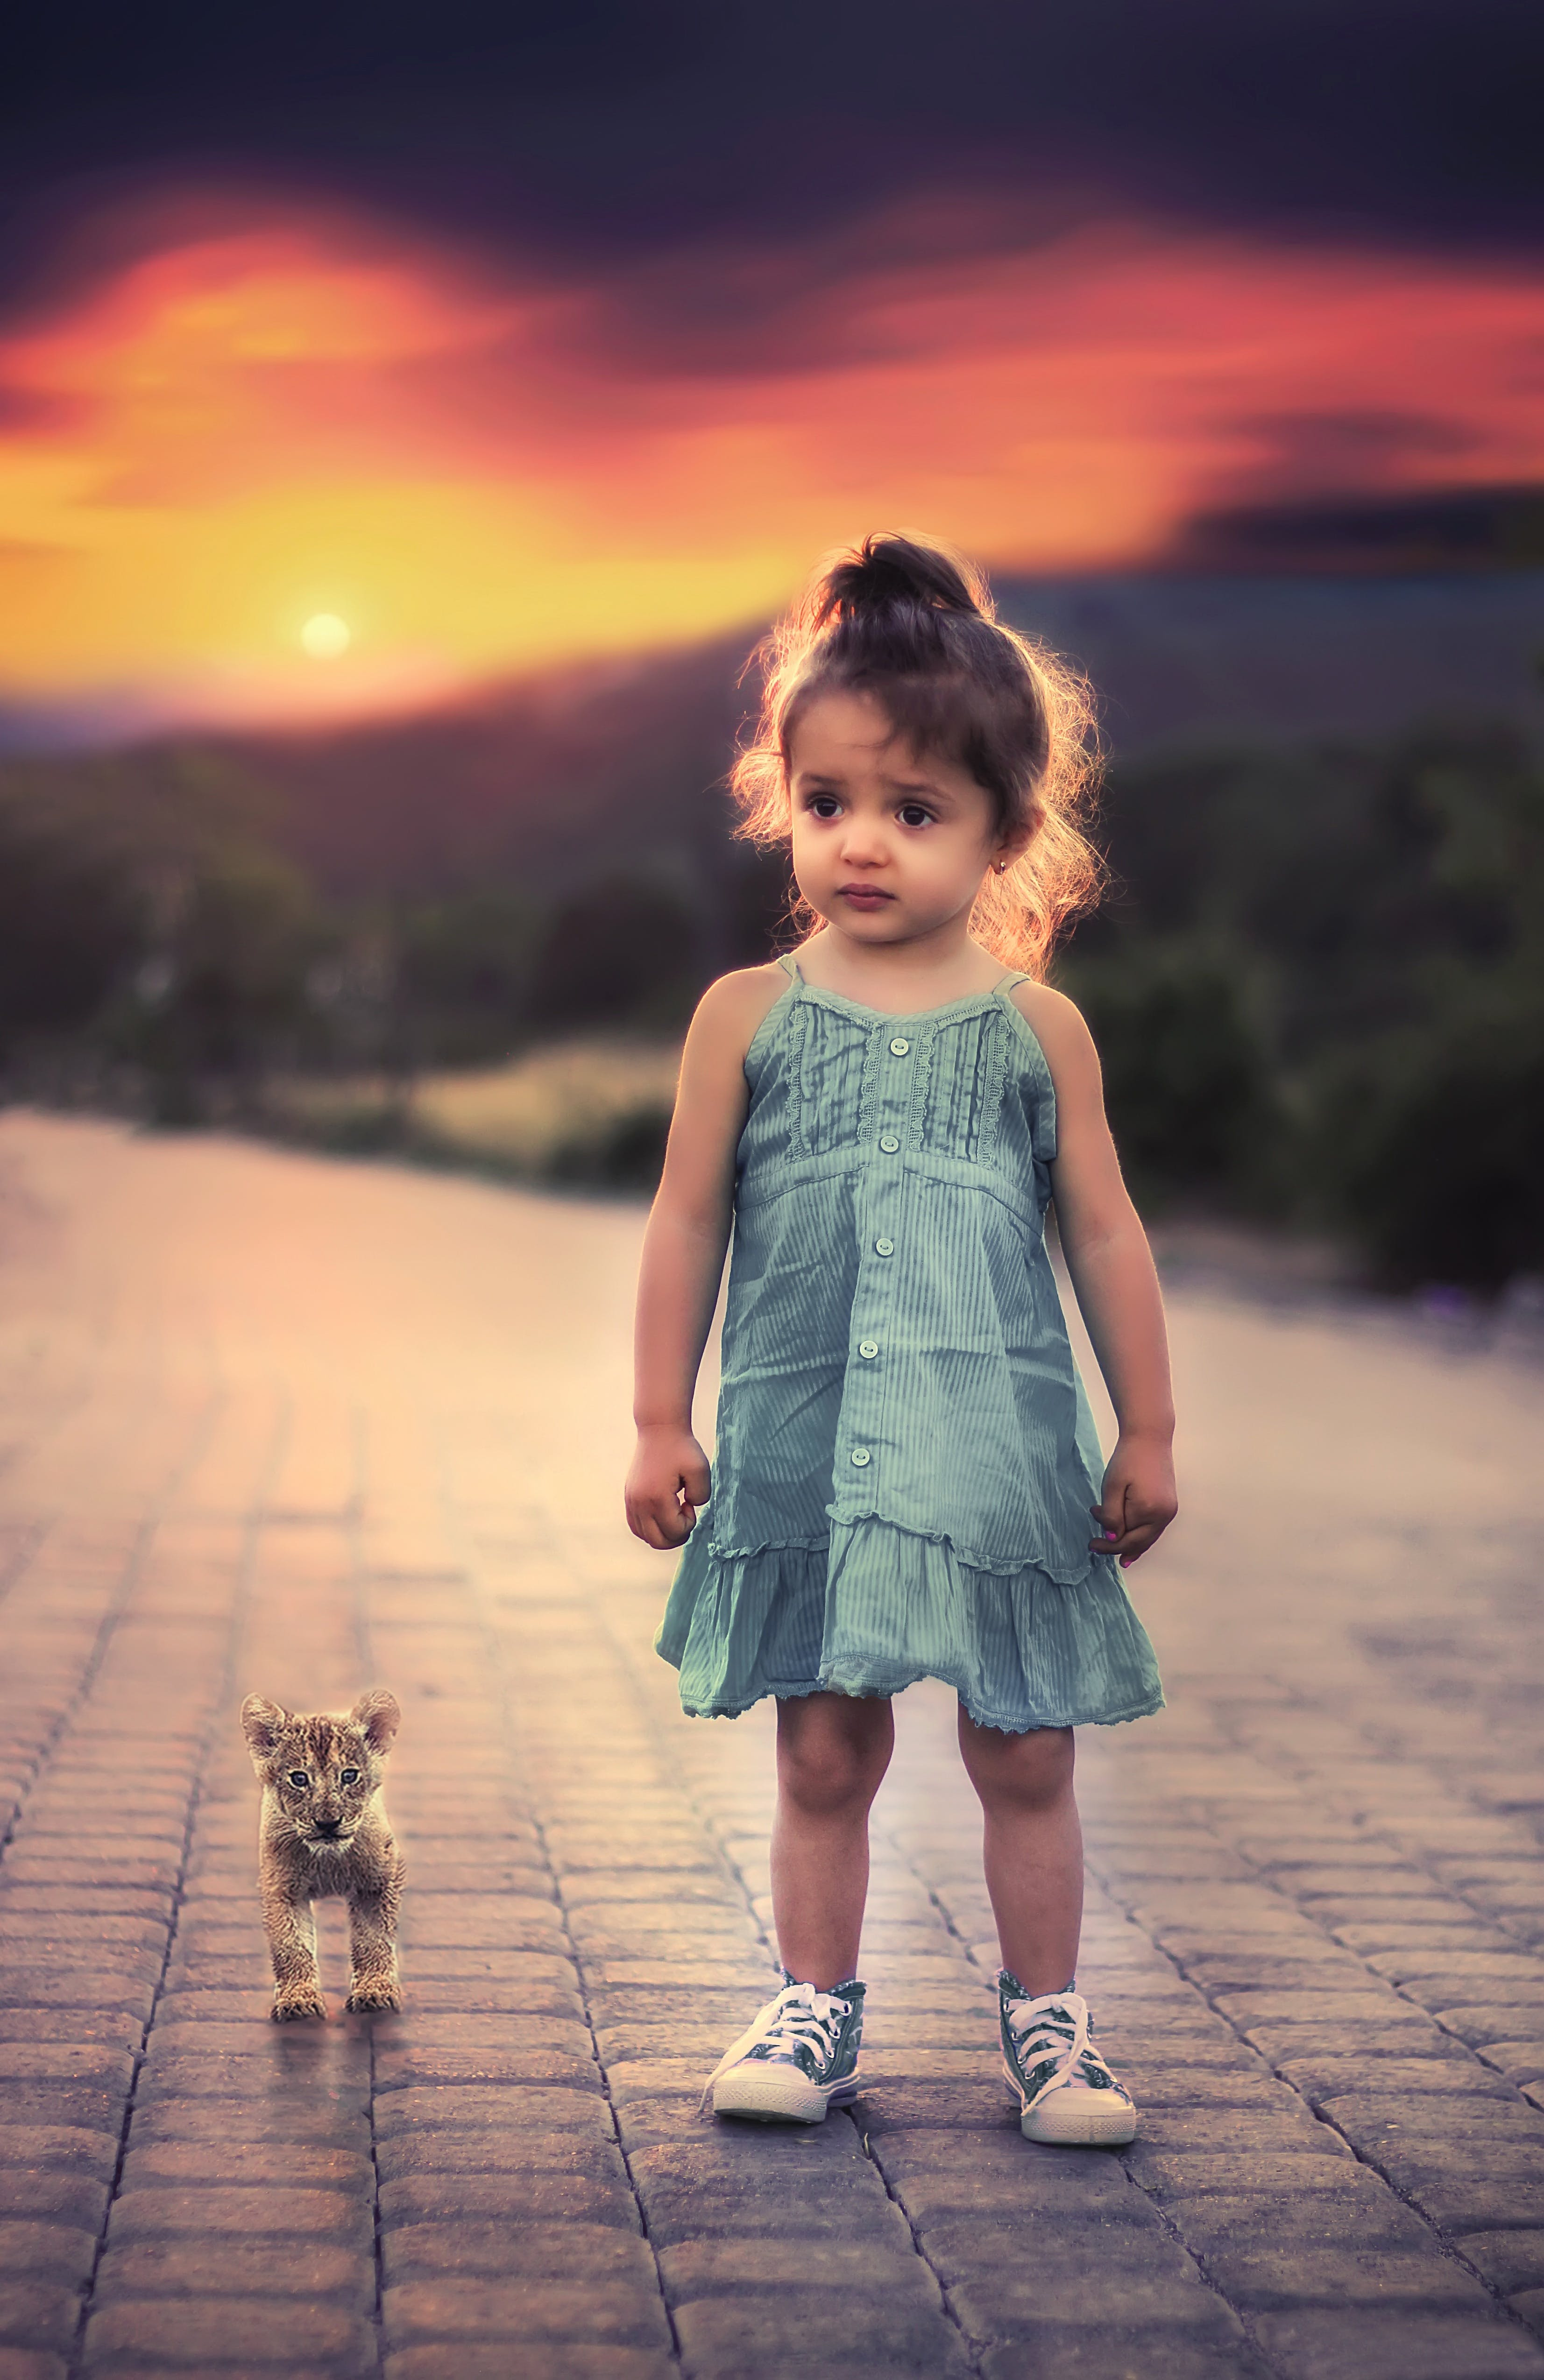 child, girl, little